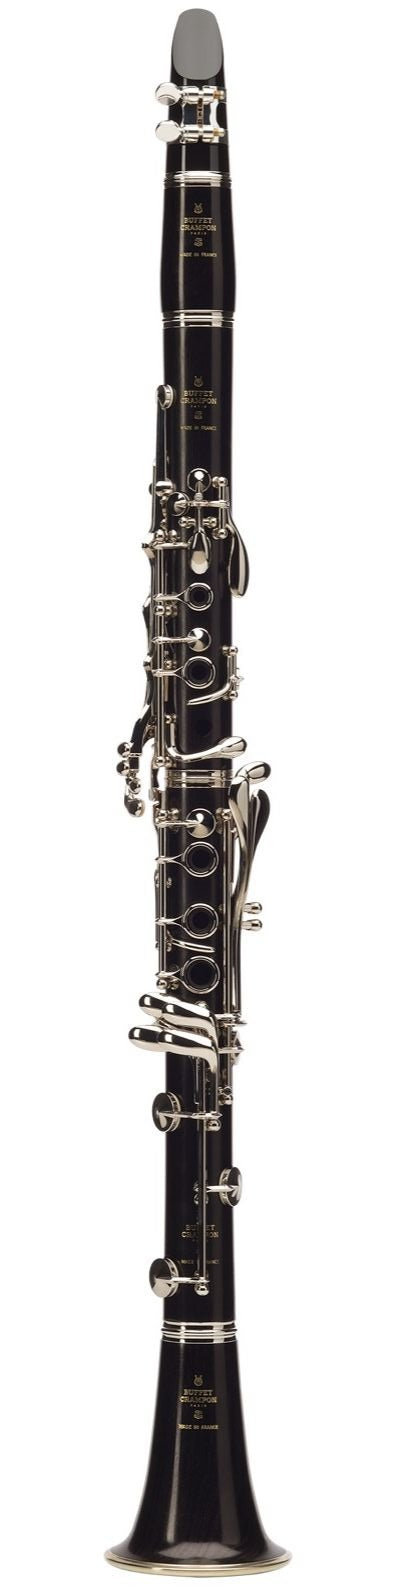 Buffet R13 Professional Clarinet